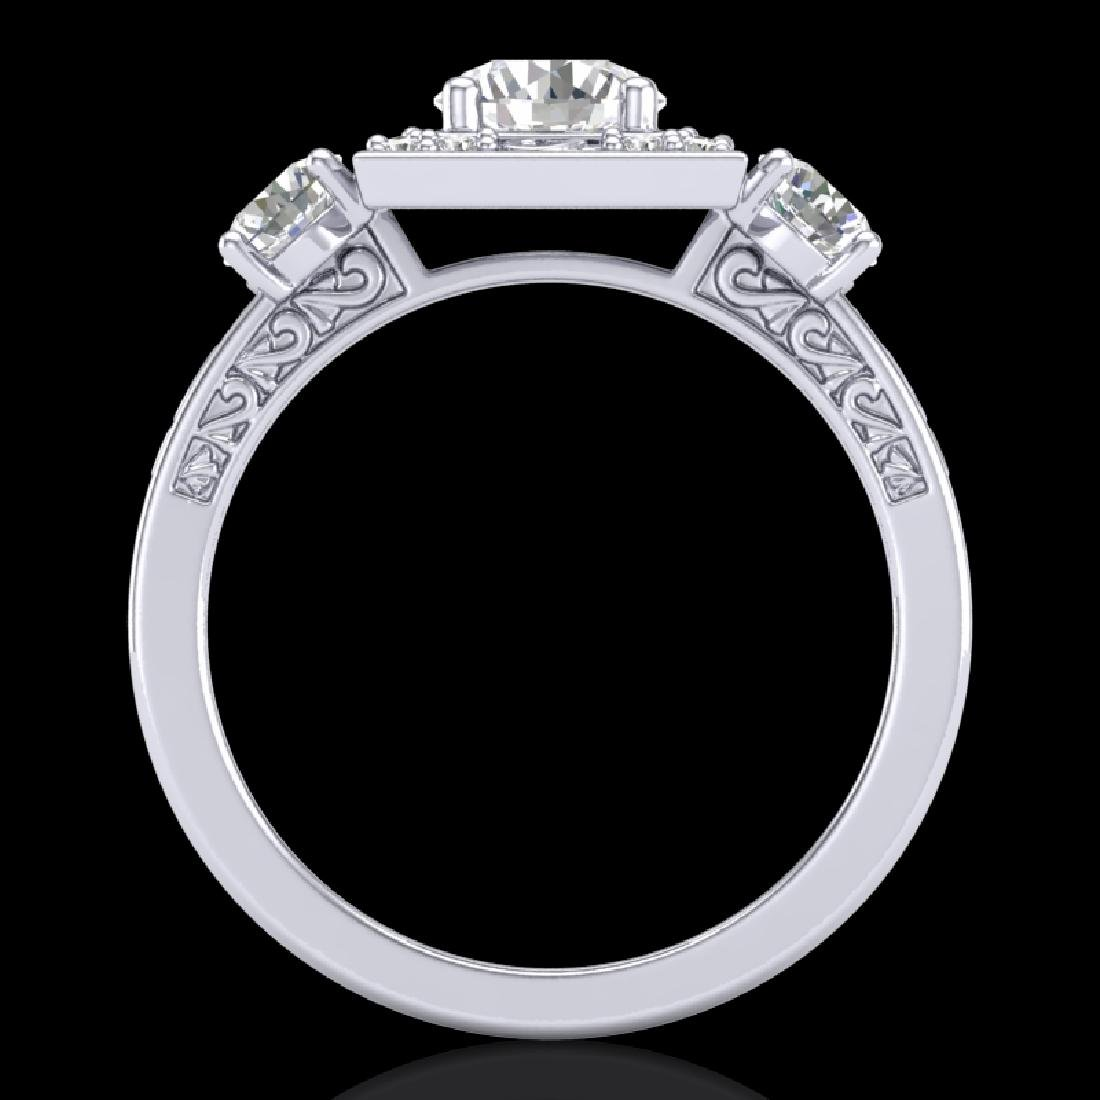 1.55 CTW VS/SI Diamond Solitaire Art Deco 3 Stone Ring